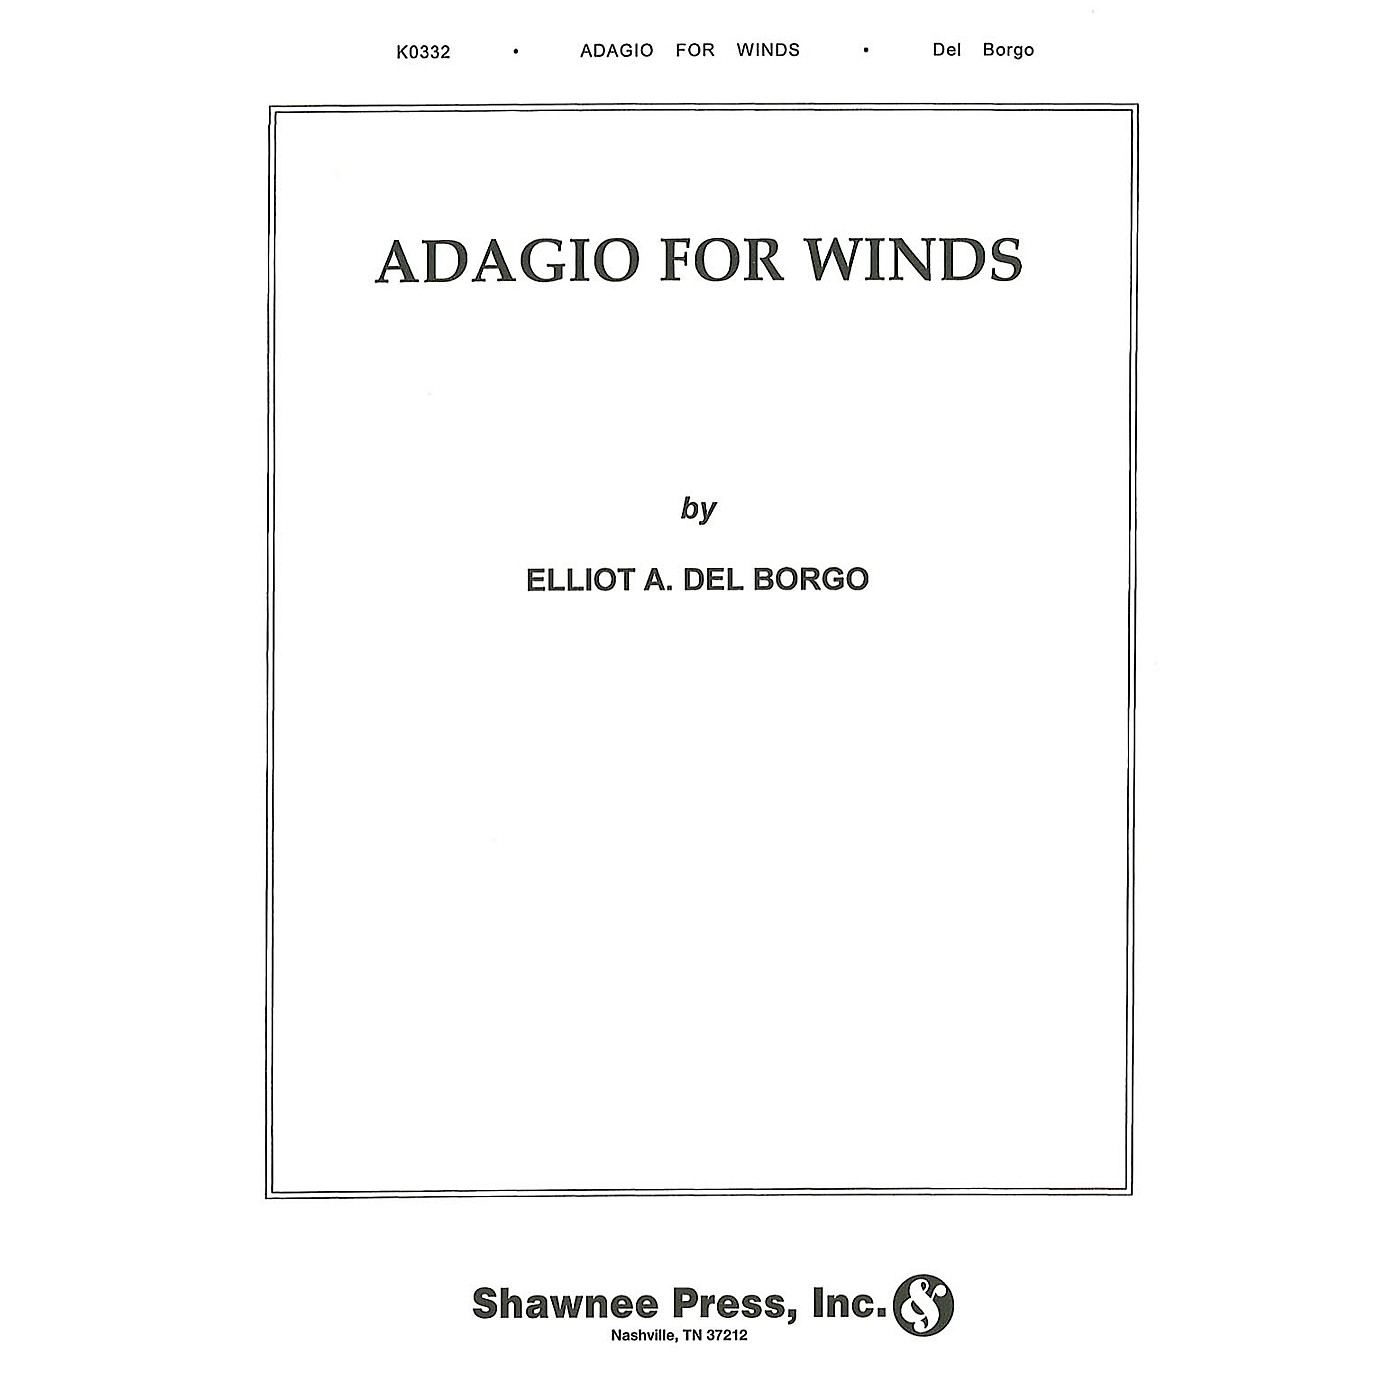 Hal Leonard Adagio for Winds Concert Band Level 3 Composed by Elliot Del Borgo thumbnail